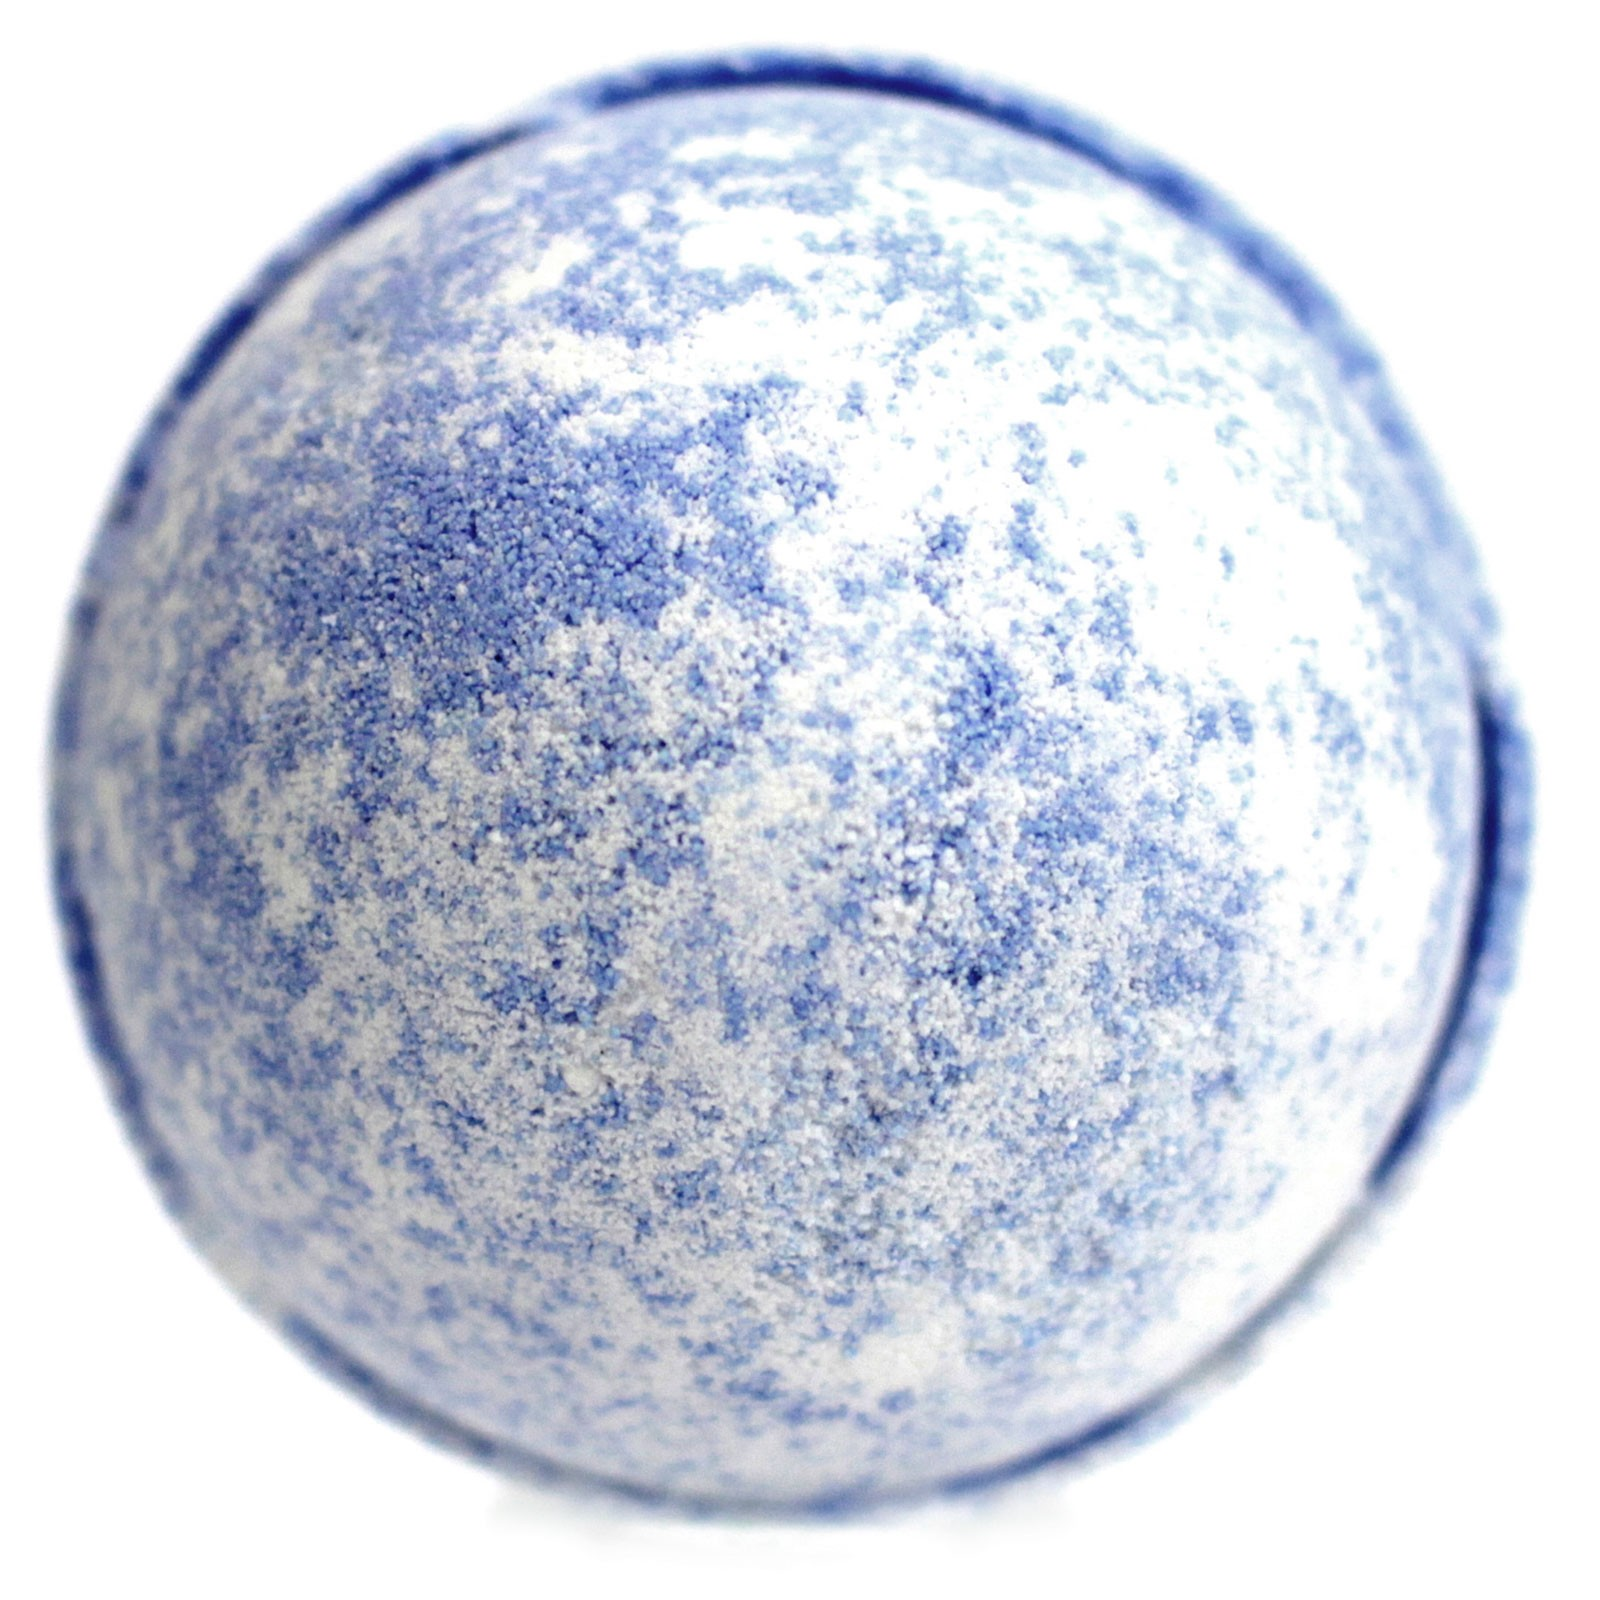 Shea Butter Bath Bomb Fig and Cassis